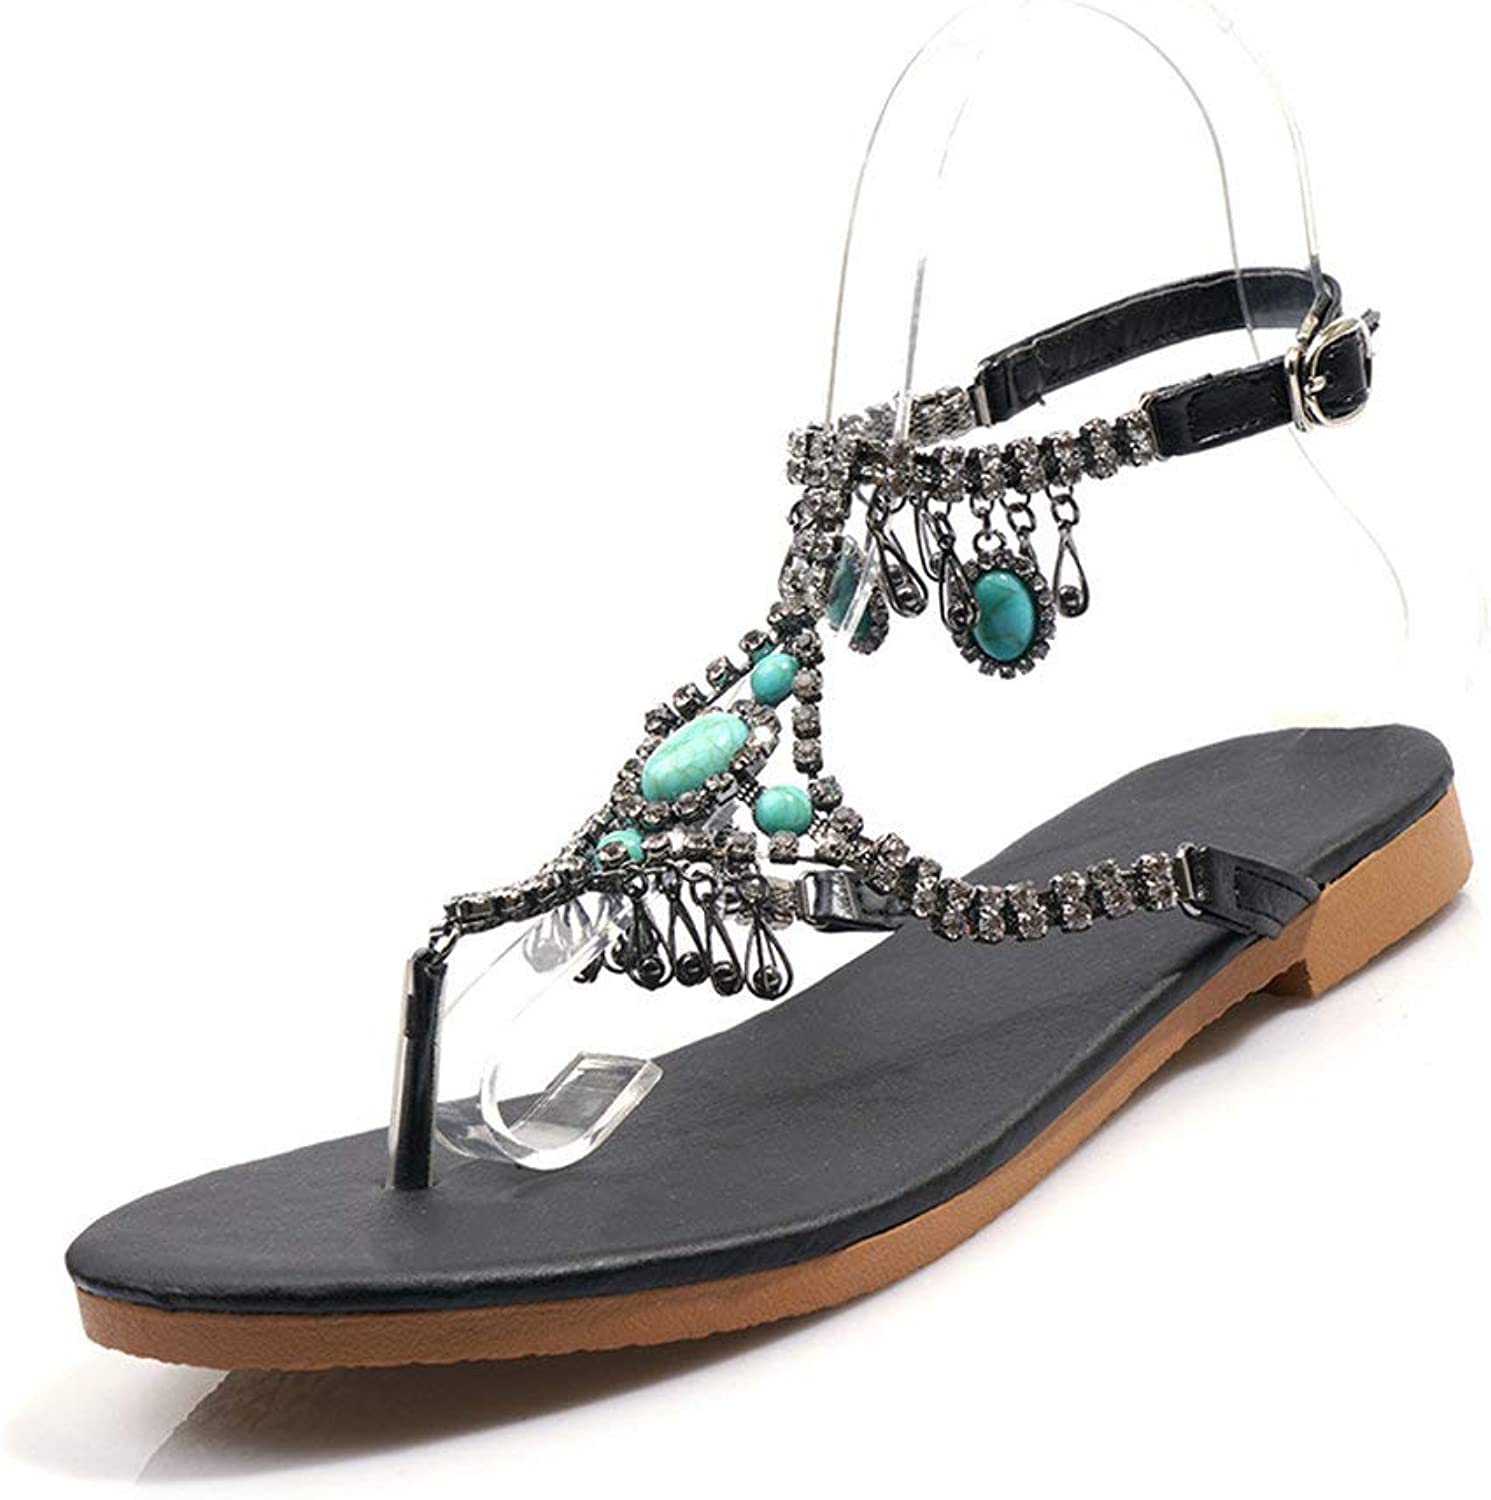 AnMengXinLing Women Flats Sandals Ankle Strap Crystal Flip Flops Thong Summer Gladiator Sandals Casual Buckle Fringe Beach Party shoes Black Silver